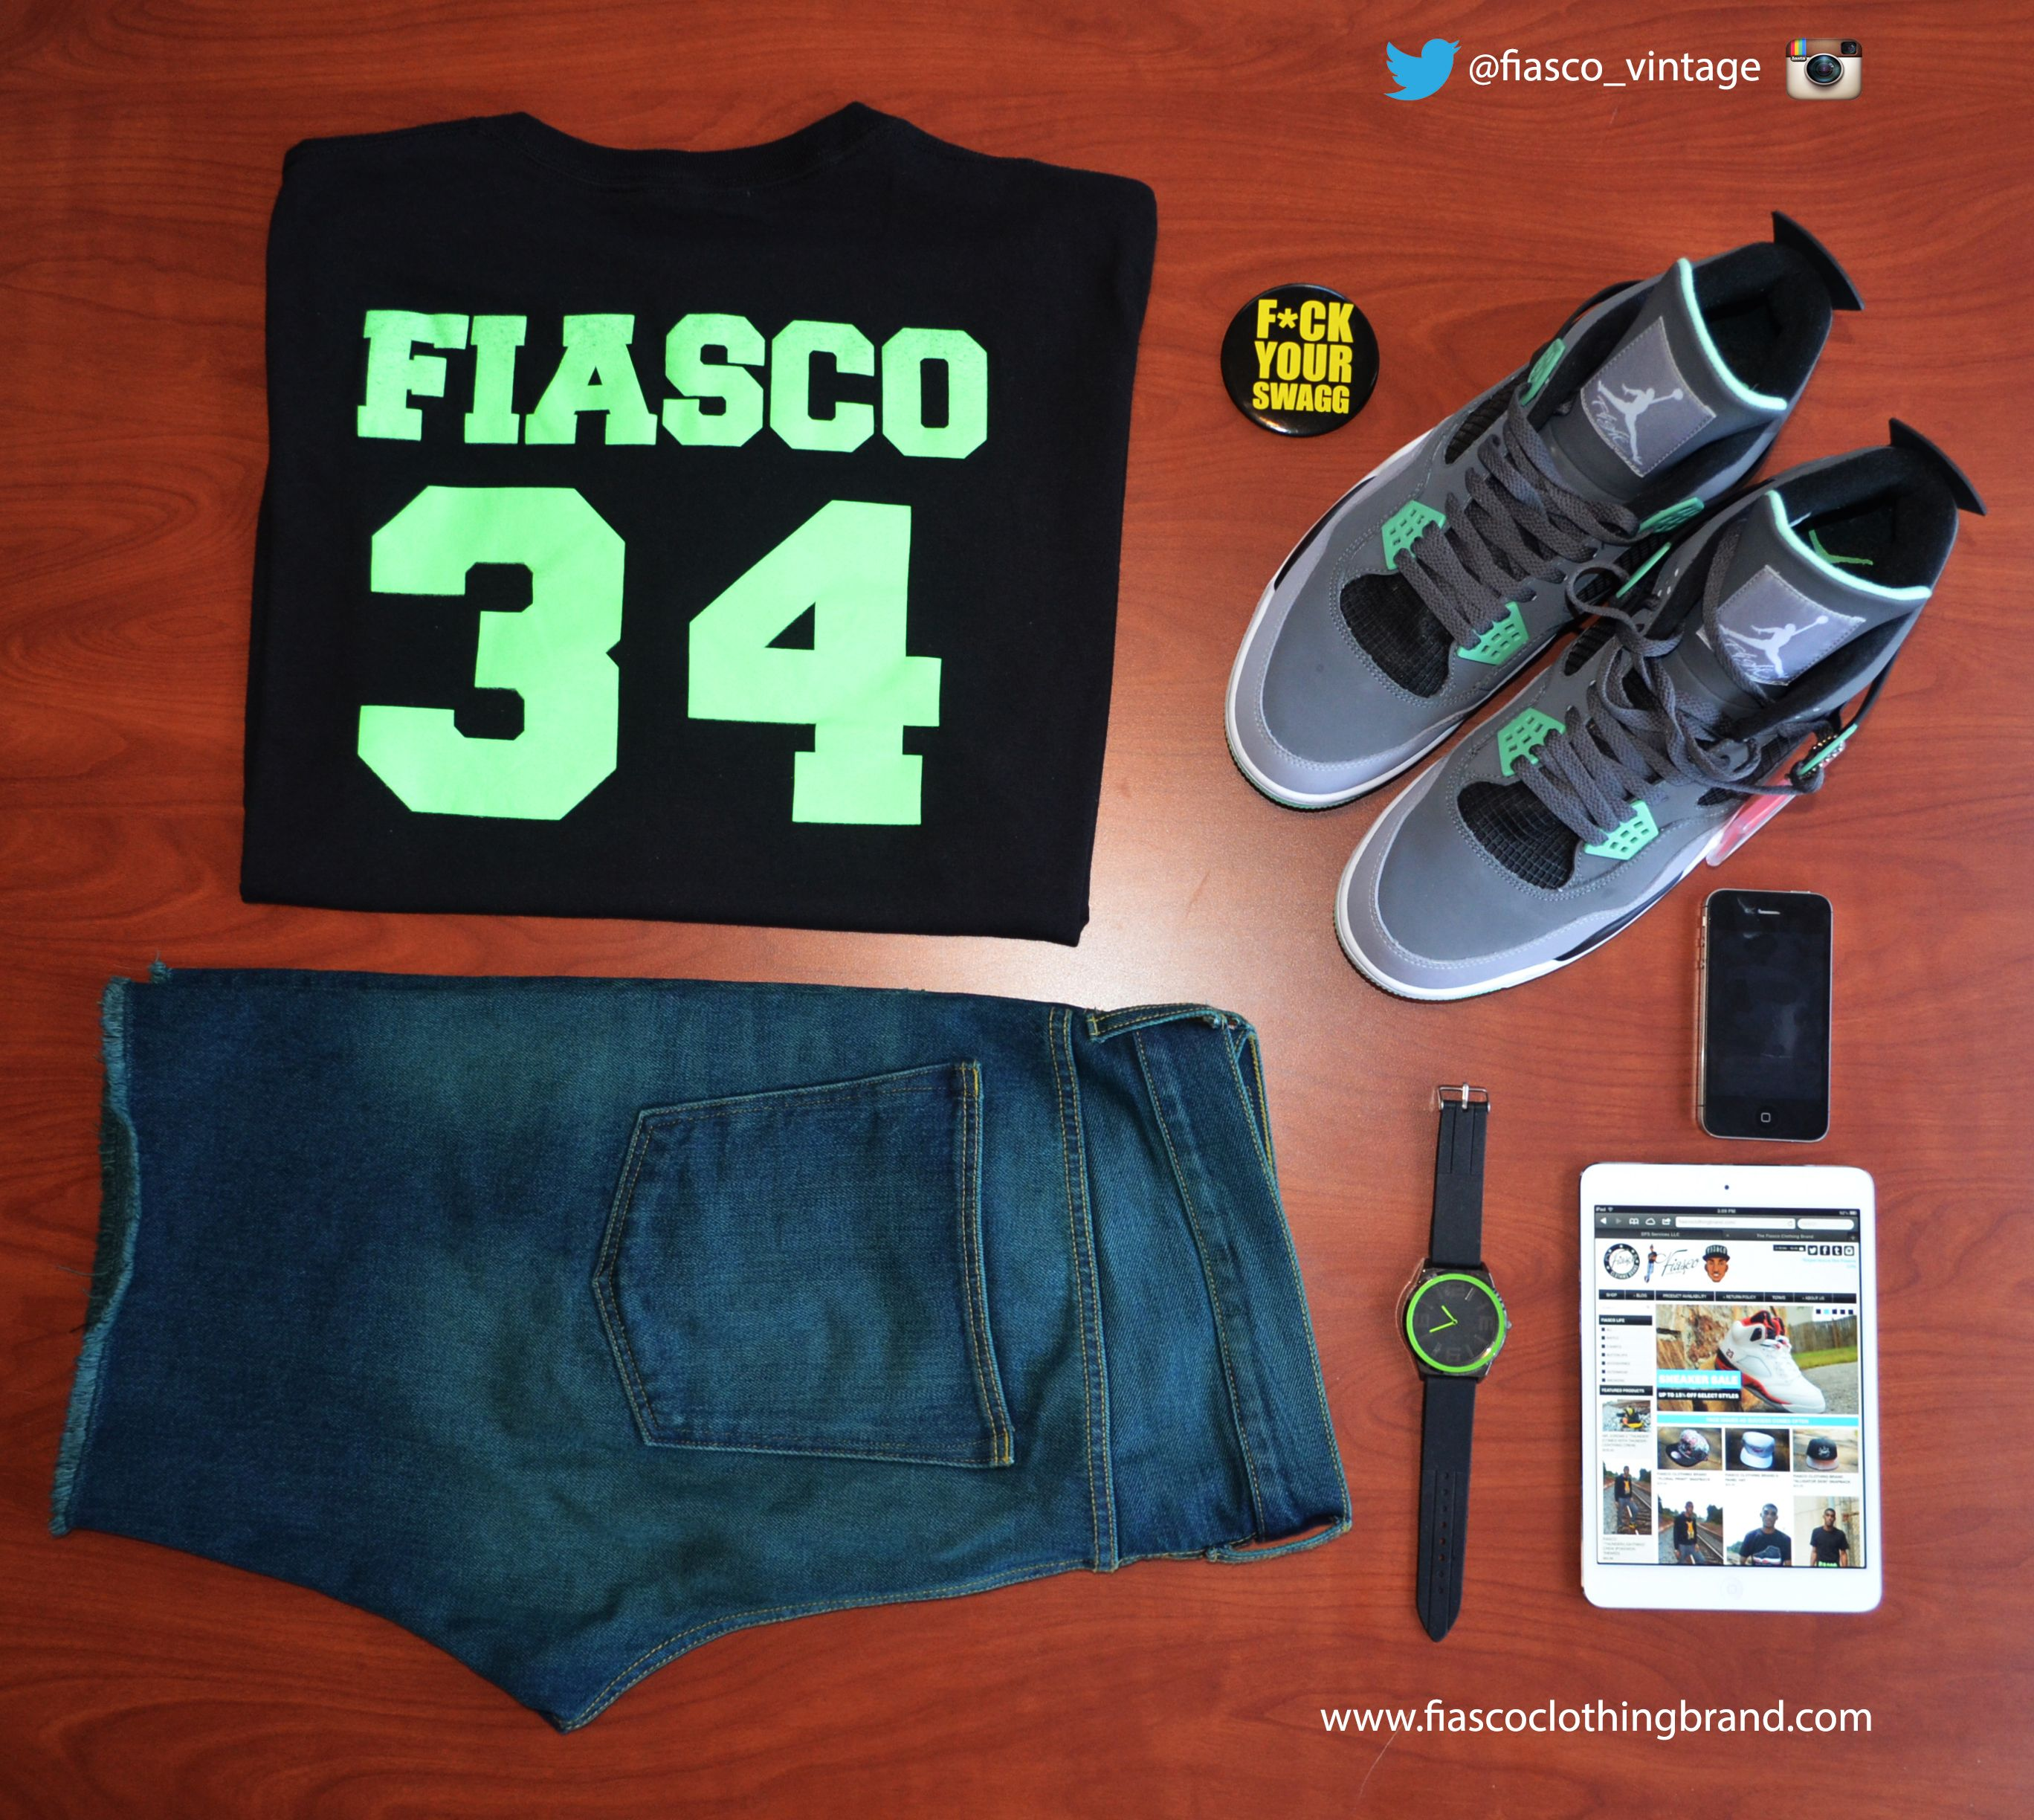 "We have now introduced our new tee! We here at the Fiasco Clothing Brand introduce our ""Glo Gang"" tee to match your Jordan 4 ""Green Glows"". The price is 15.00 and we have them in hand ready to ship now. Visit http://fiascoclothingbrand.com to place an order. They are available to purchase now. The sizes are small to 3 XL. Make sure you follow us on instagram and twitter: @fiasco_brand"